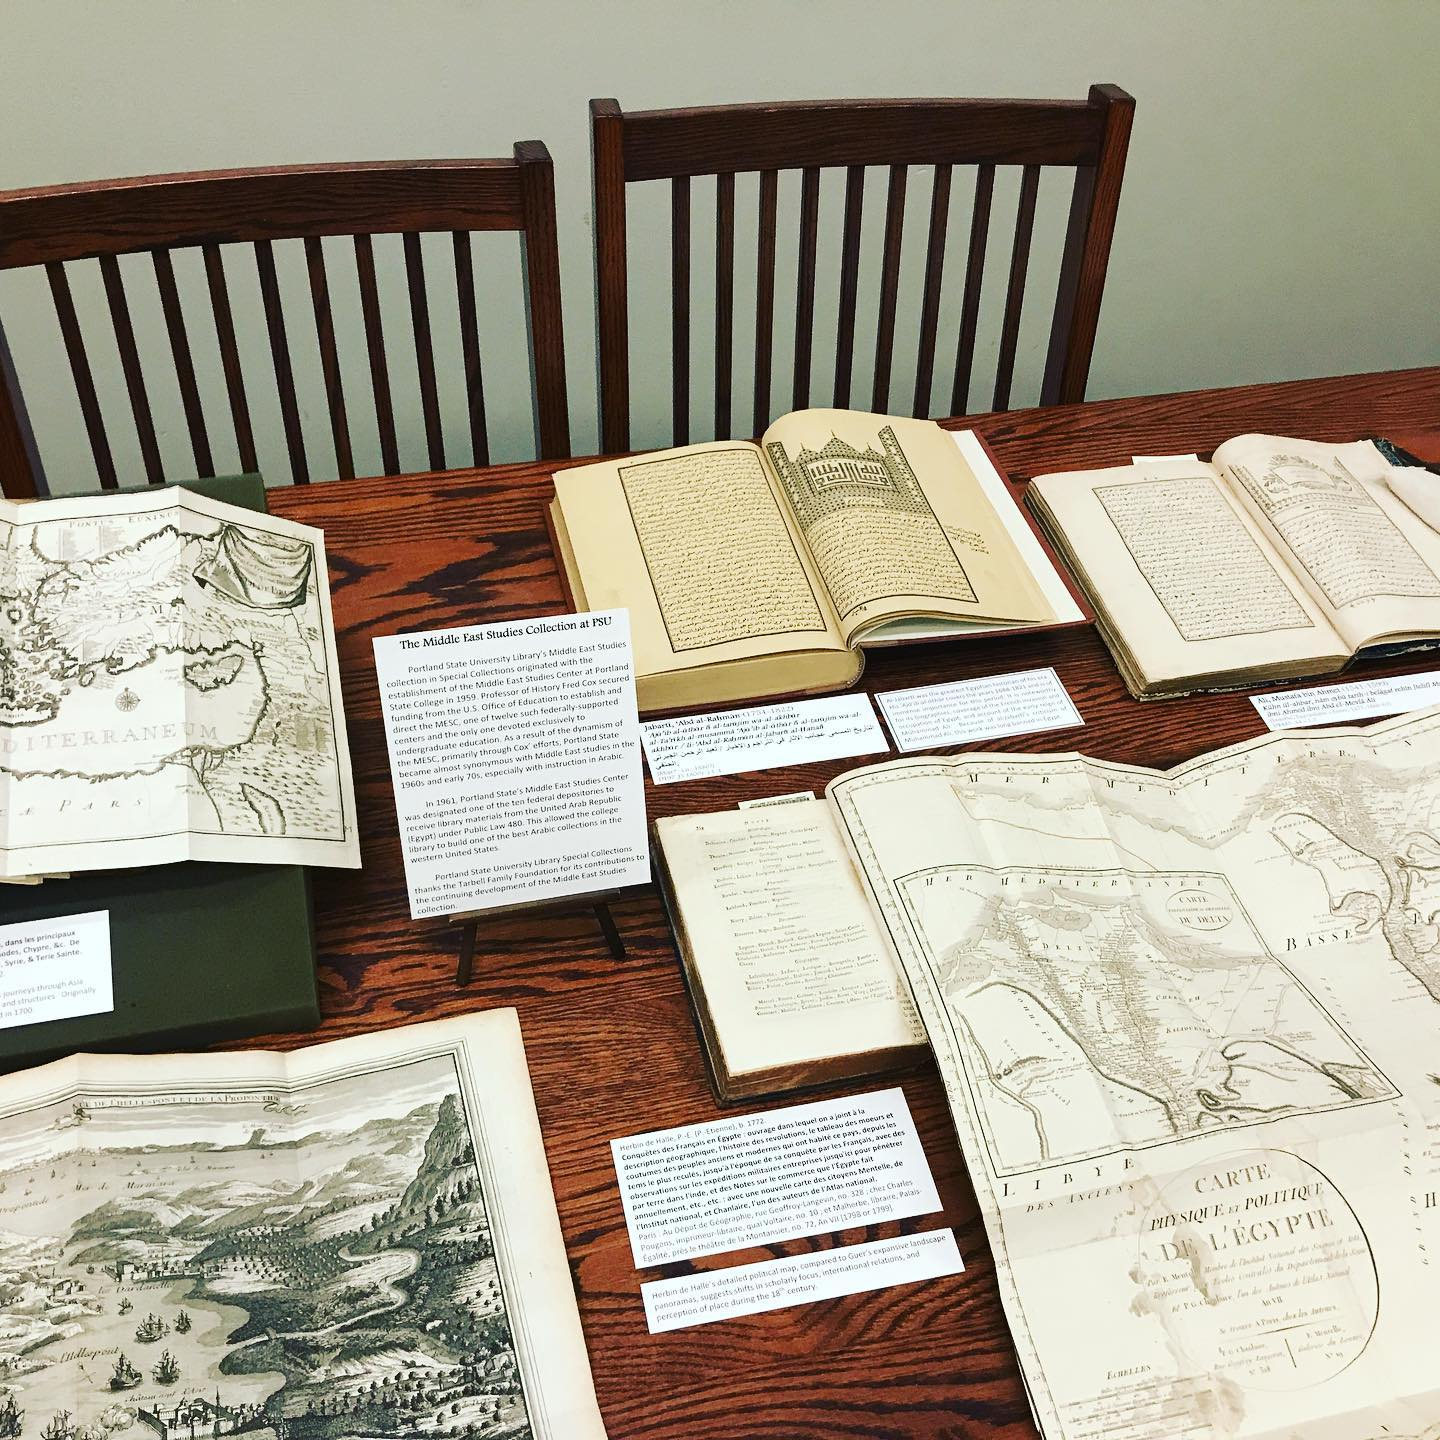 A collection of old books and maps on display on a wooden table.